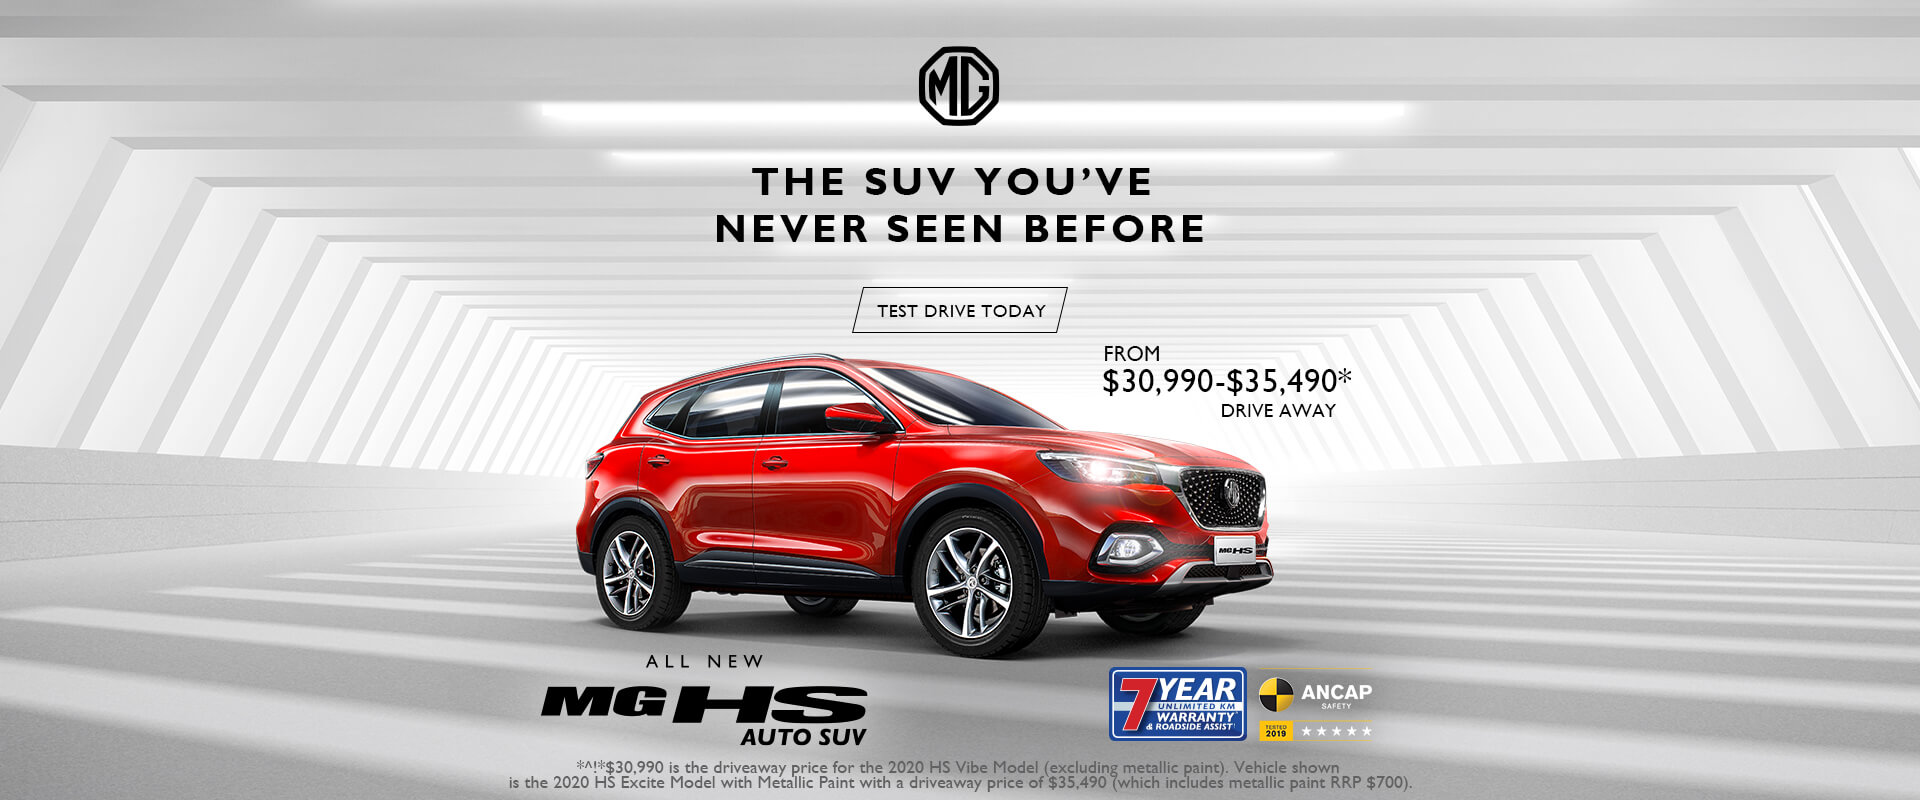 MG - SUV Never Seen Before